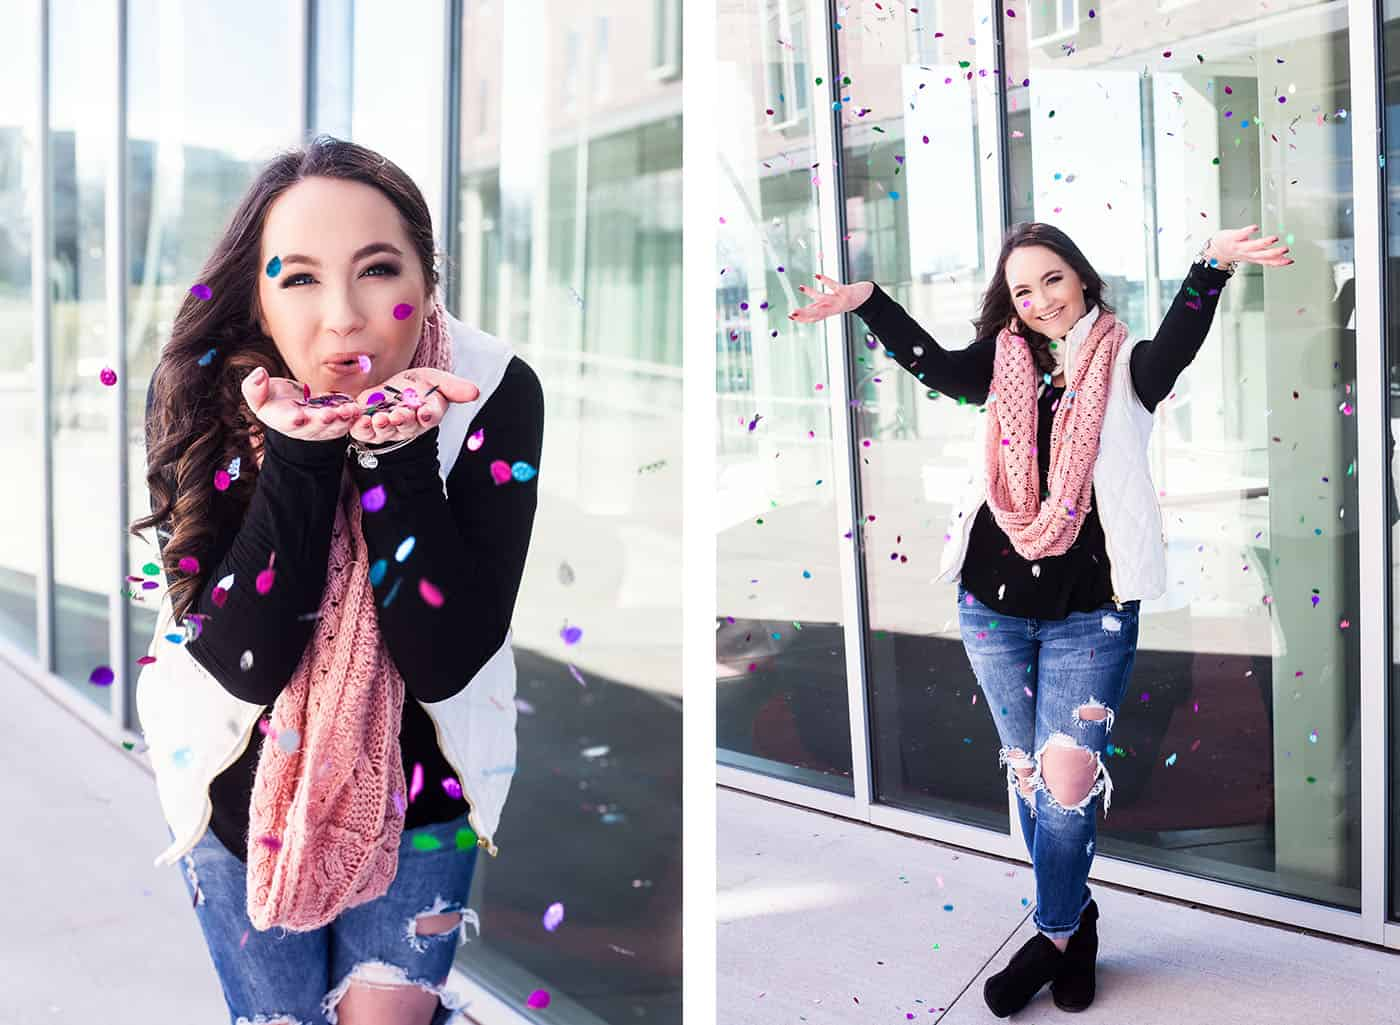 senior girl tossing confetti by reflective glass